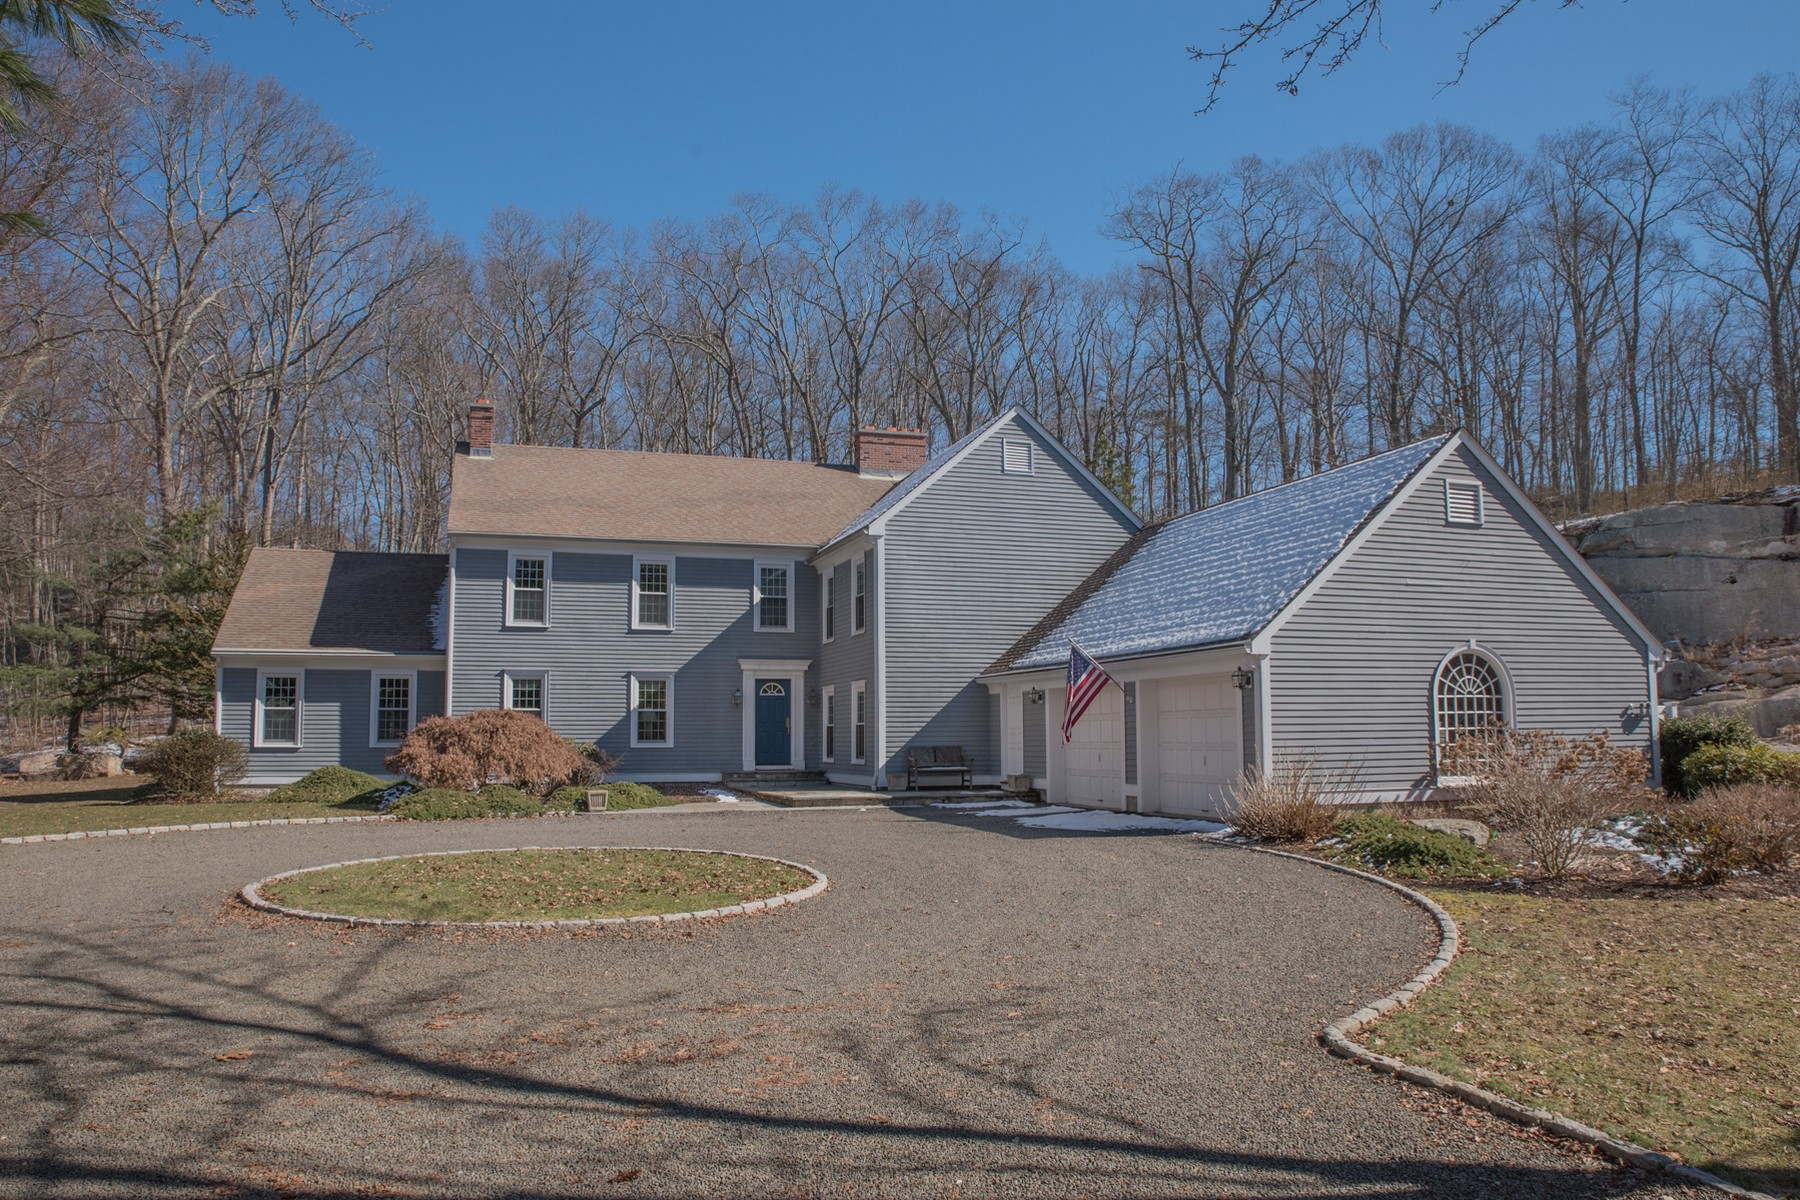 Casa Unifamiliar por un Venta en Gracious Four Bedroom Colonial 4-1 Talcott Farm Road Old Lyme, Connecticut 06371 Estados Unidos